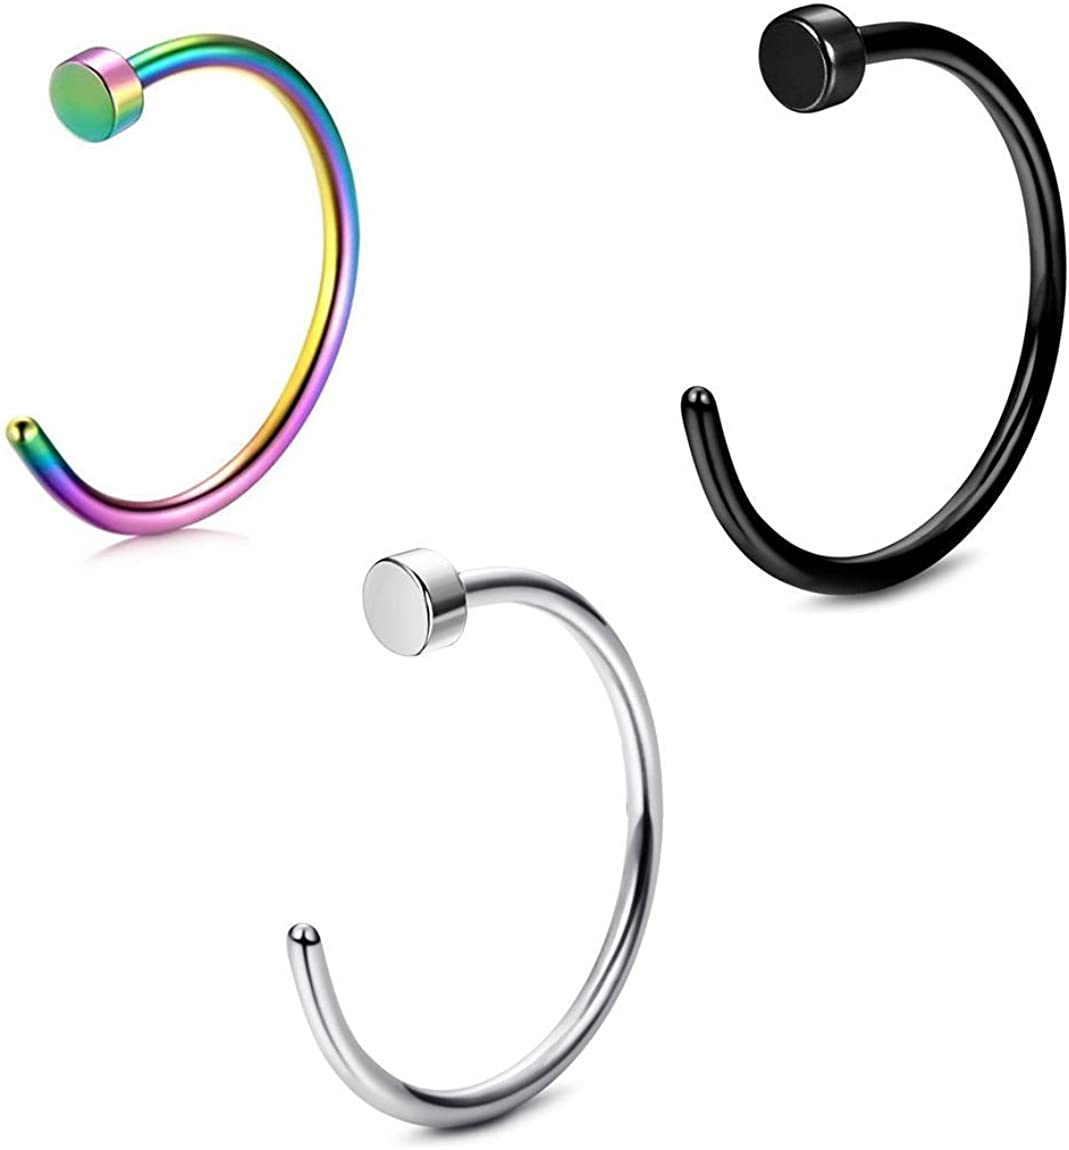 BodyJewelryOnline Nose Hoop Ring Pack of 3 Black, 18g and 20g All Lengths Available Surgical Steel and Multicolor Made of Surgical Steel